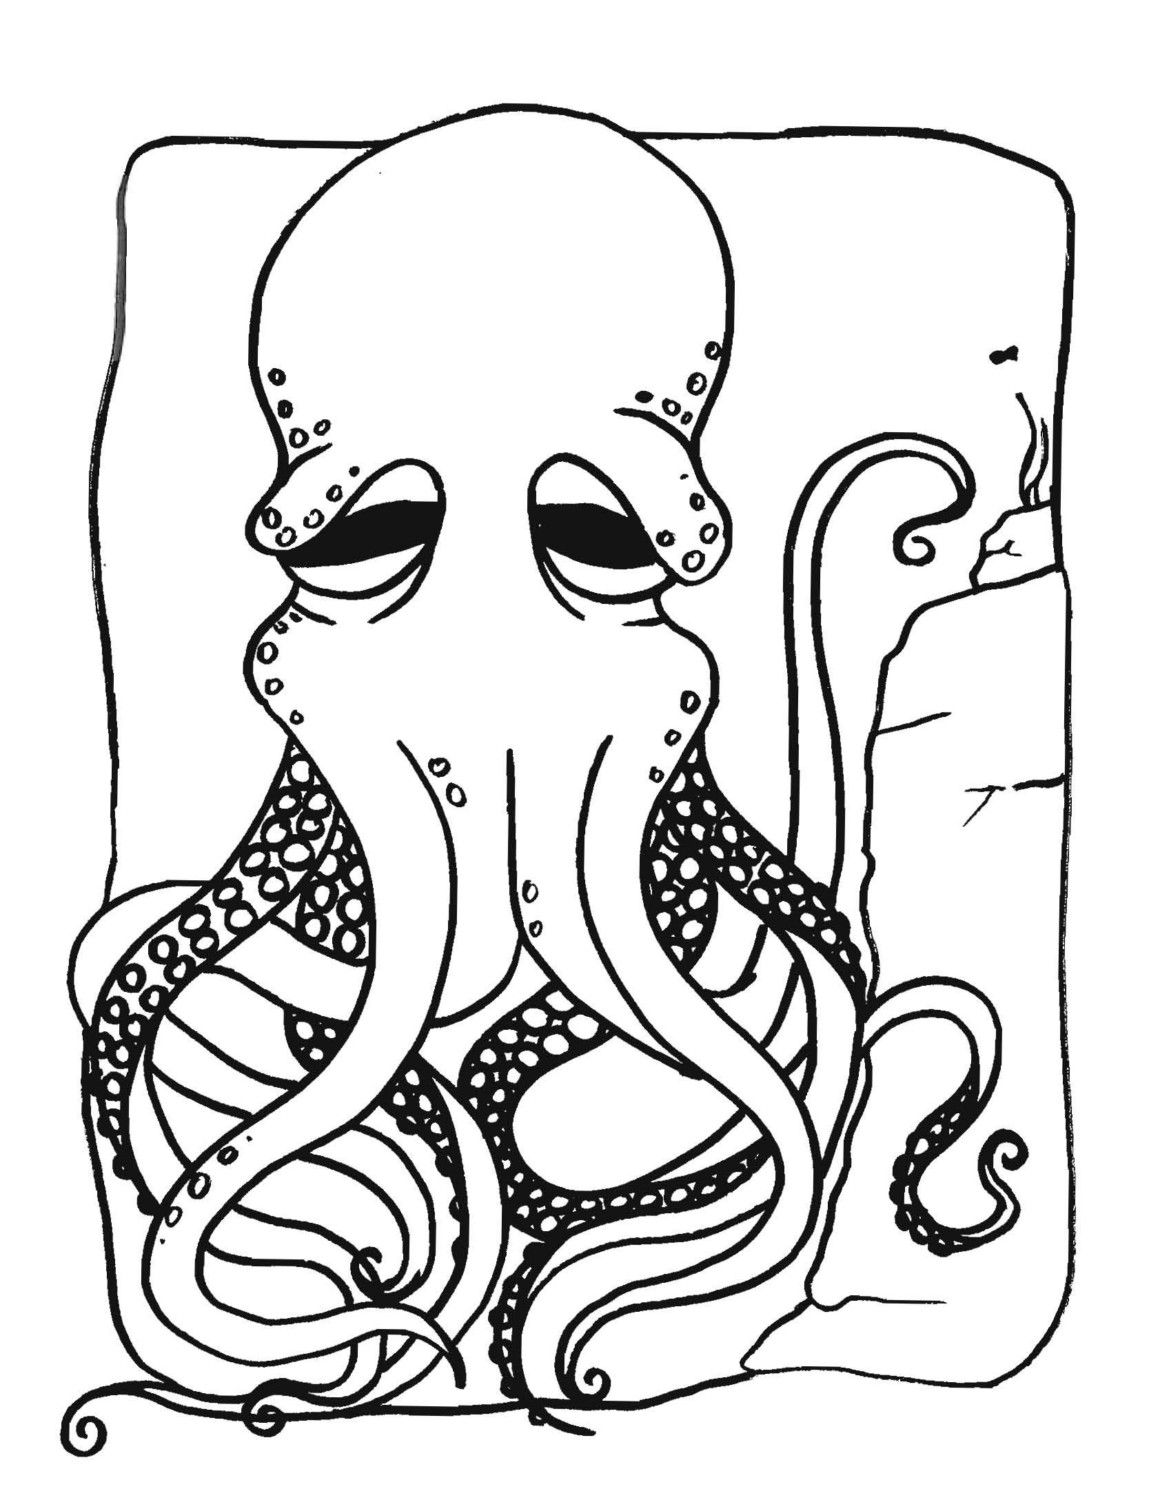 Octopus Coloring Pages and Book | UniqueColoringPages